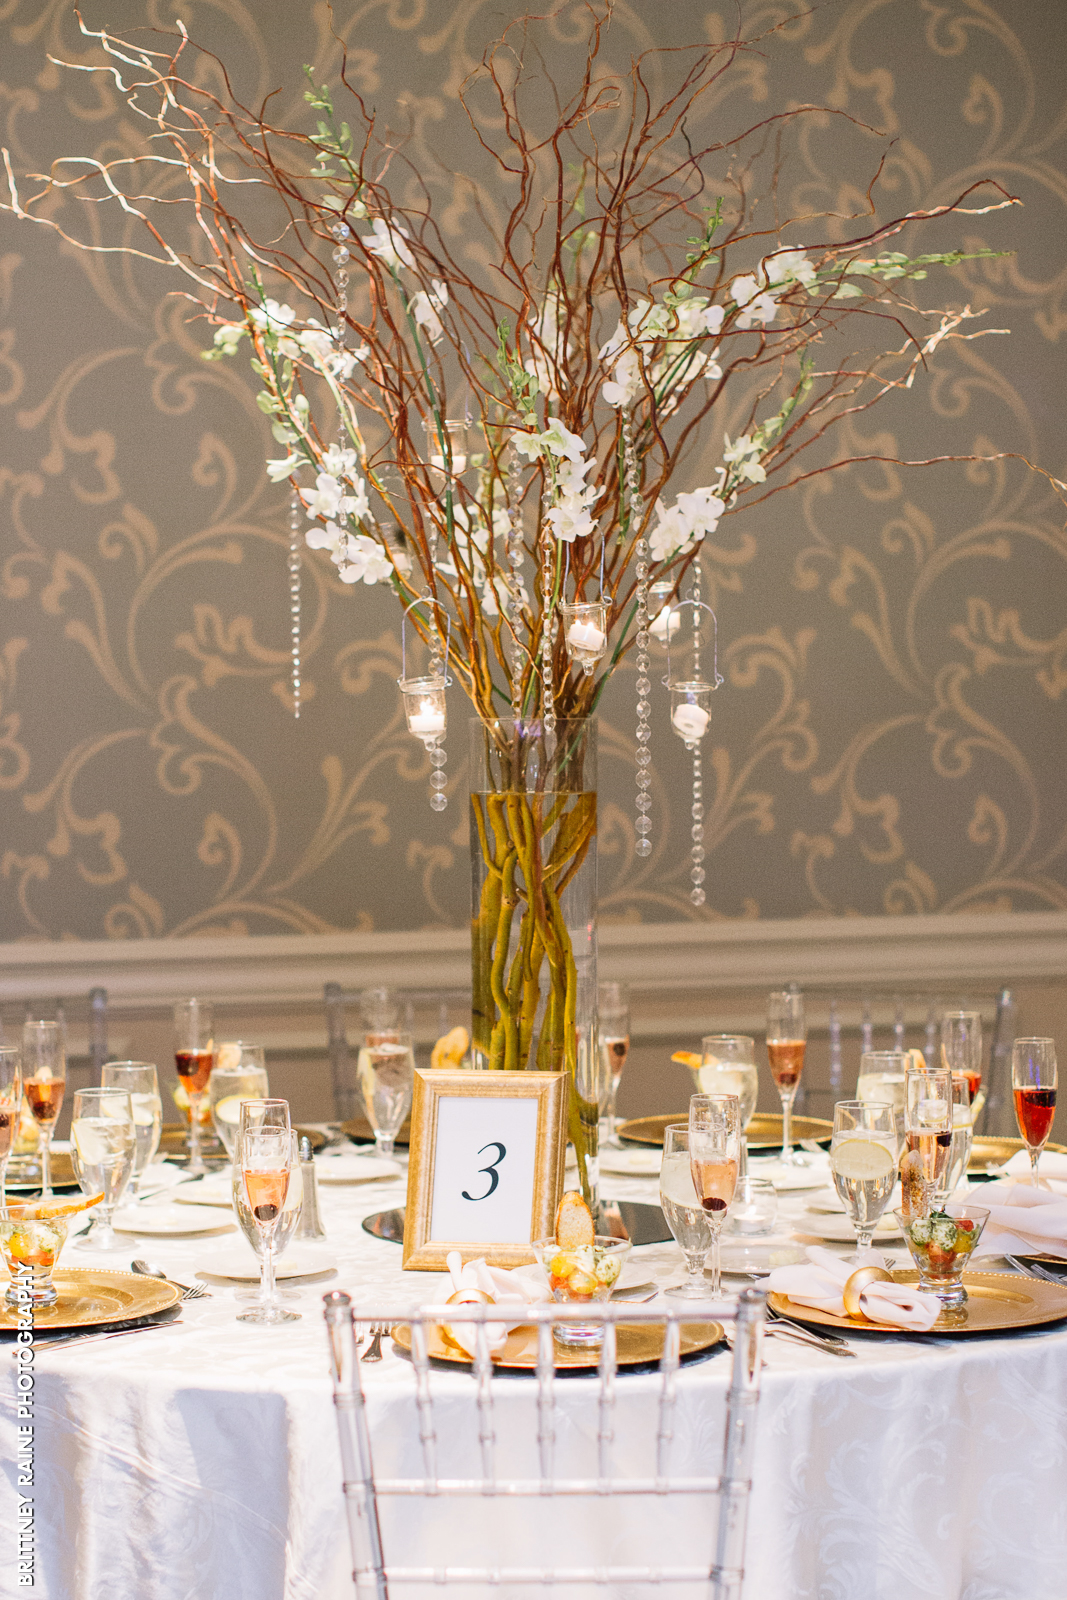 We love these rustic centerpieces the bride and groom brought in for their Emerald Ballroom wedding reception.